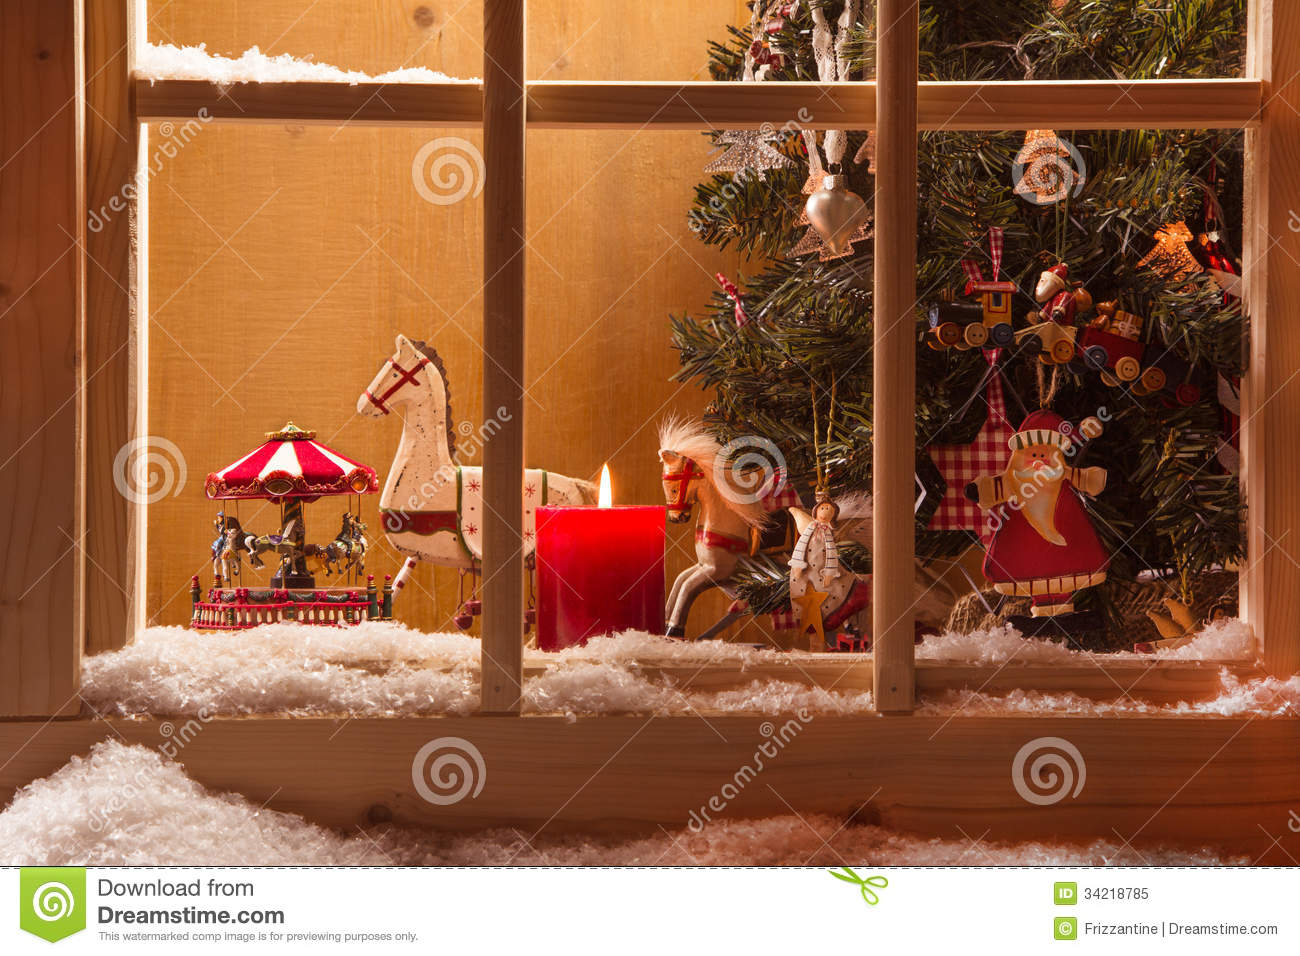 atmospheric christmas window sill decorationsnowtre ecandler - Window Sill Christmas Decorations